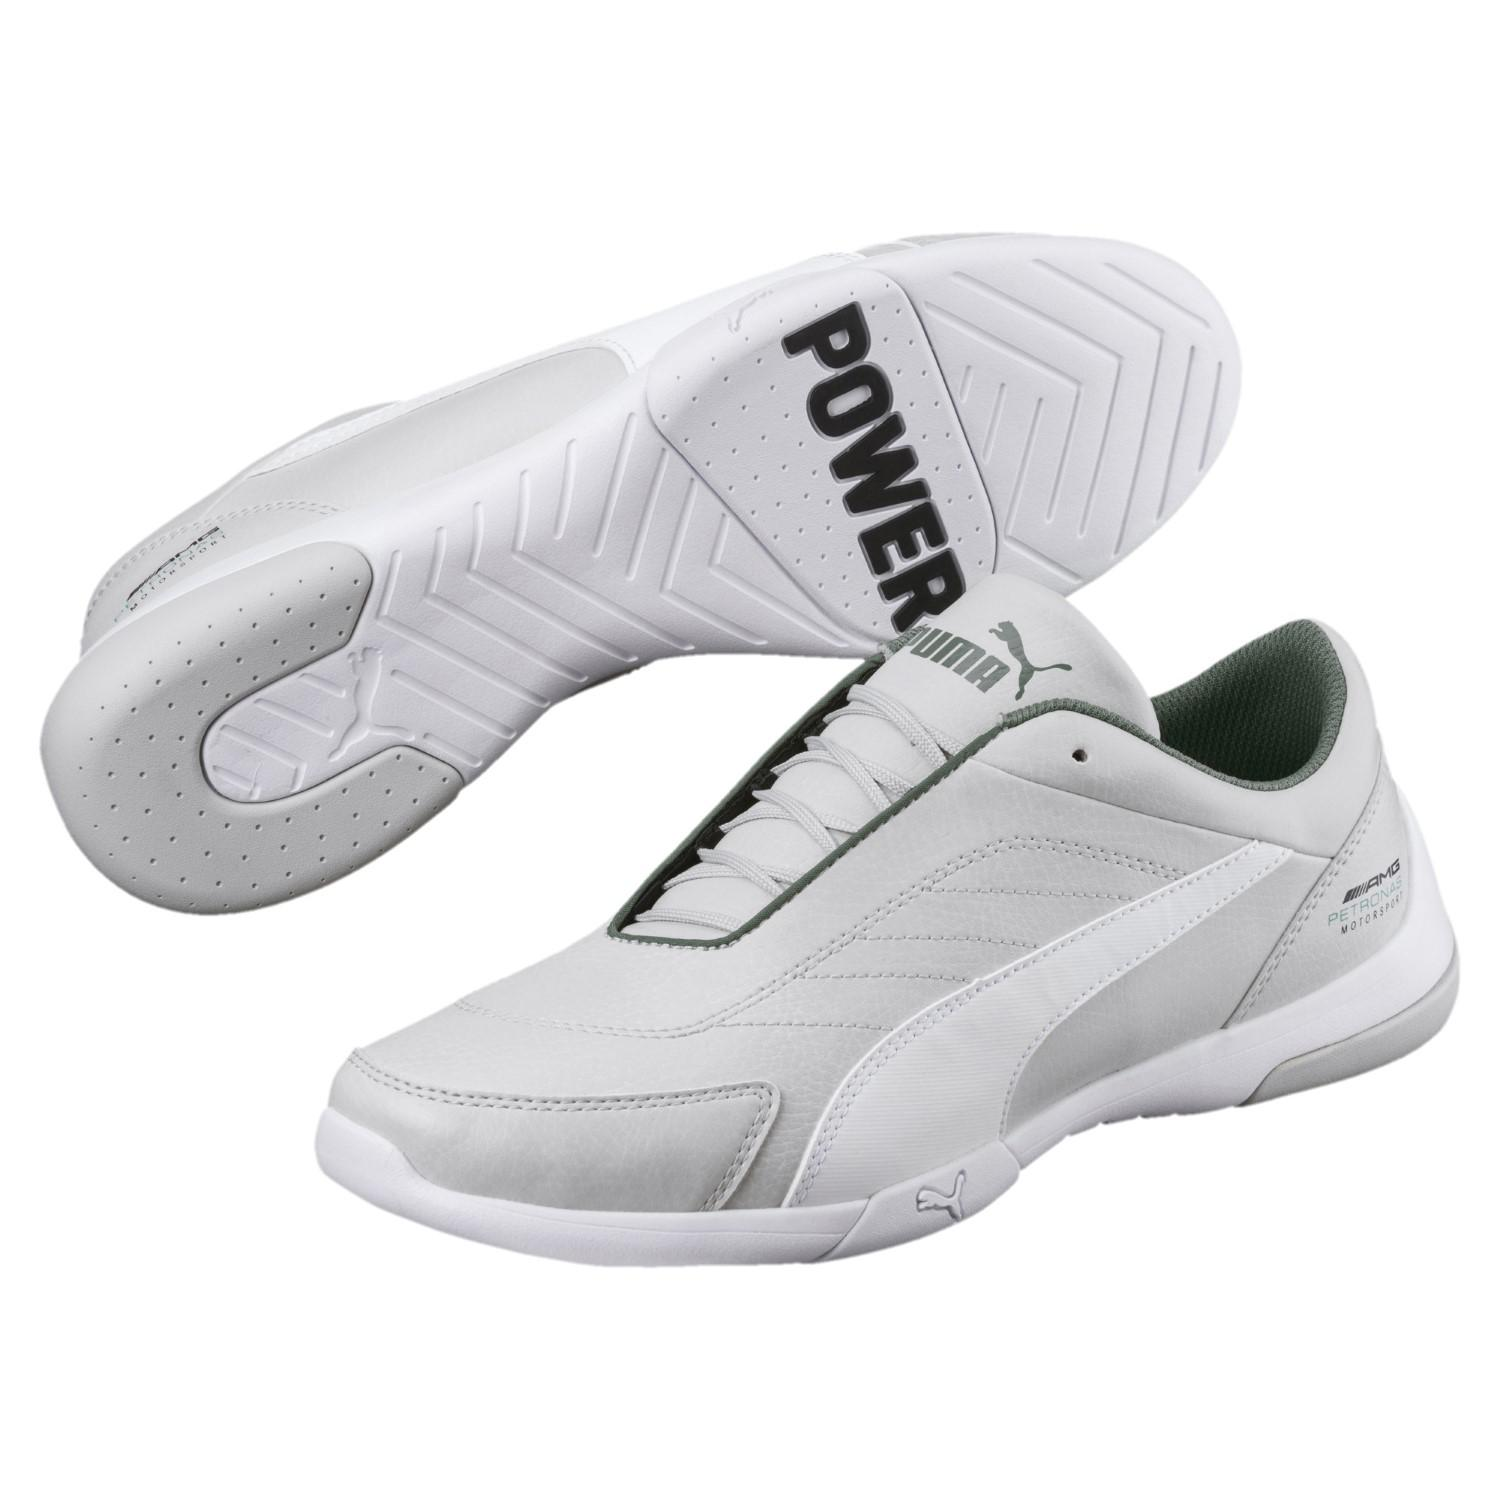 eb1818d40bb7d6 Lyst - PUMA Mercedes Amg Petronas Kart Cat Iii Sneakers in White for Men